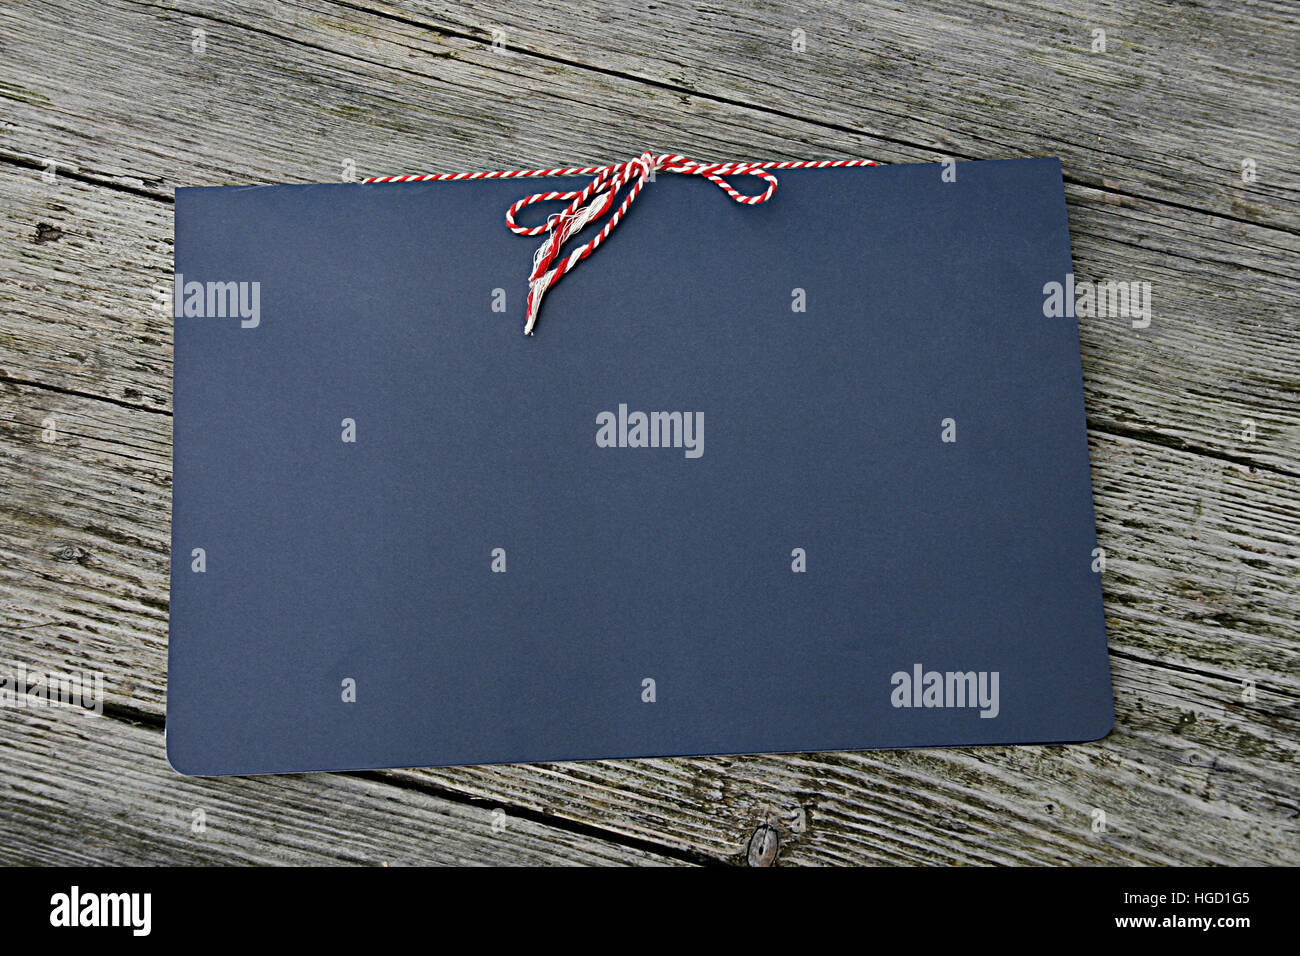 Blue folder on a wooden background with a red and white string tied bow. - Stock Image